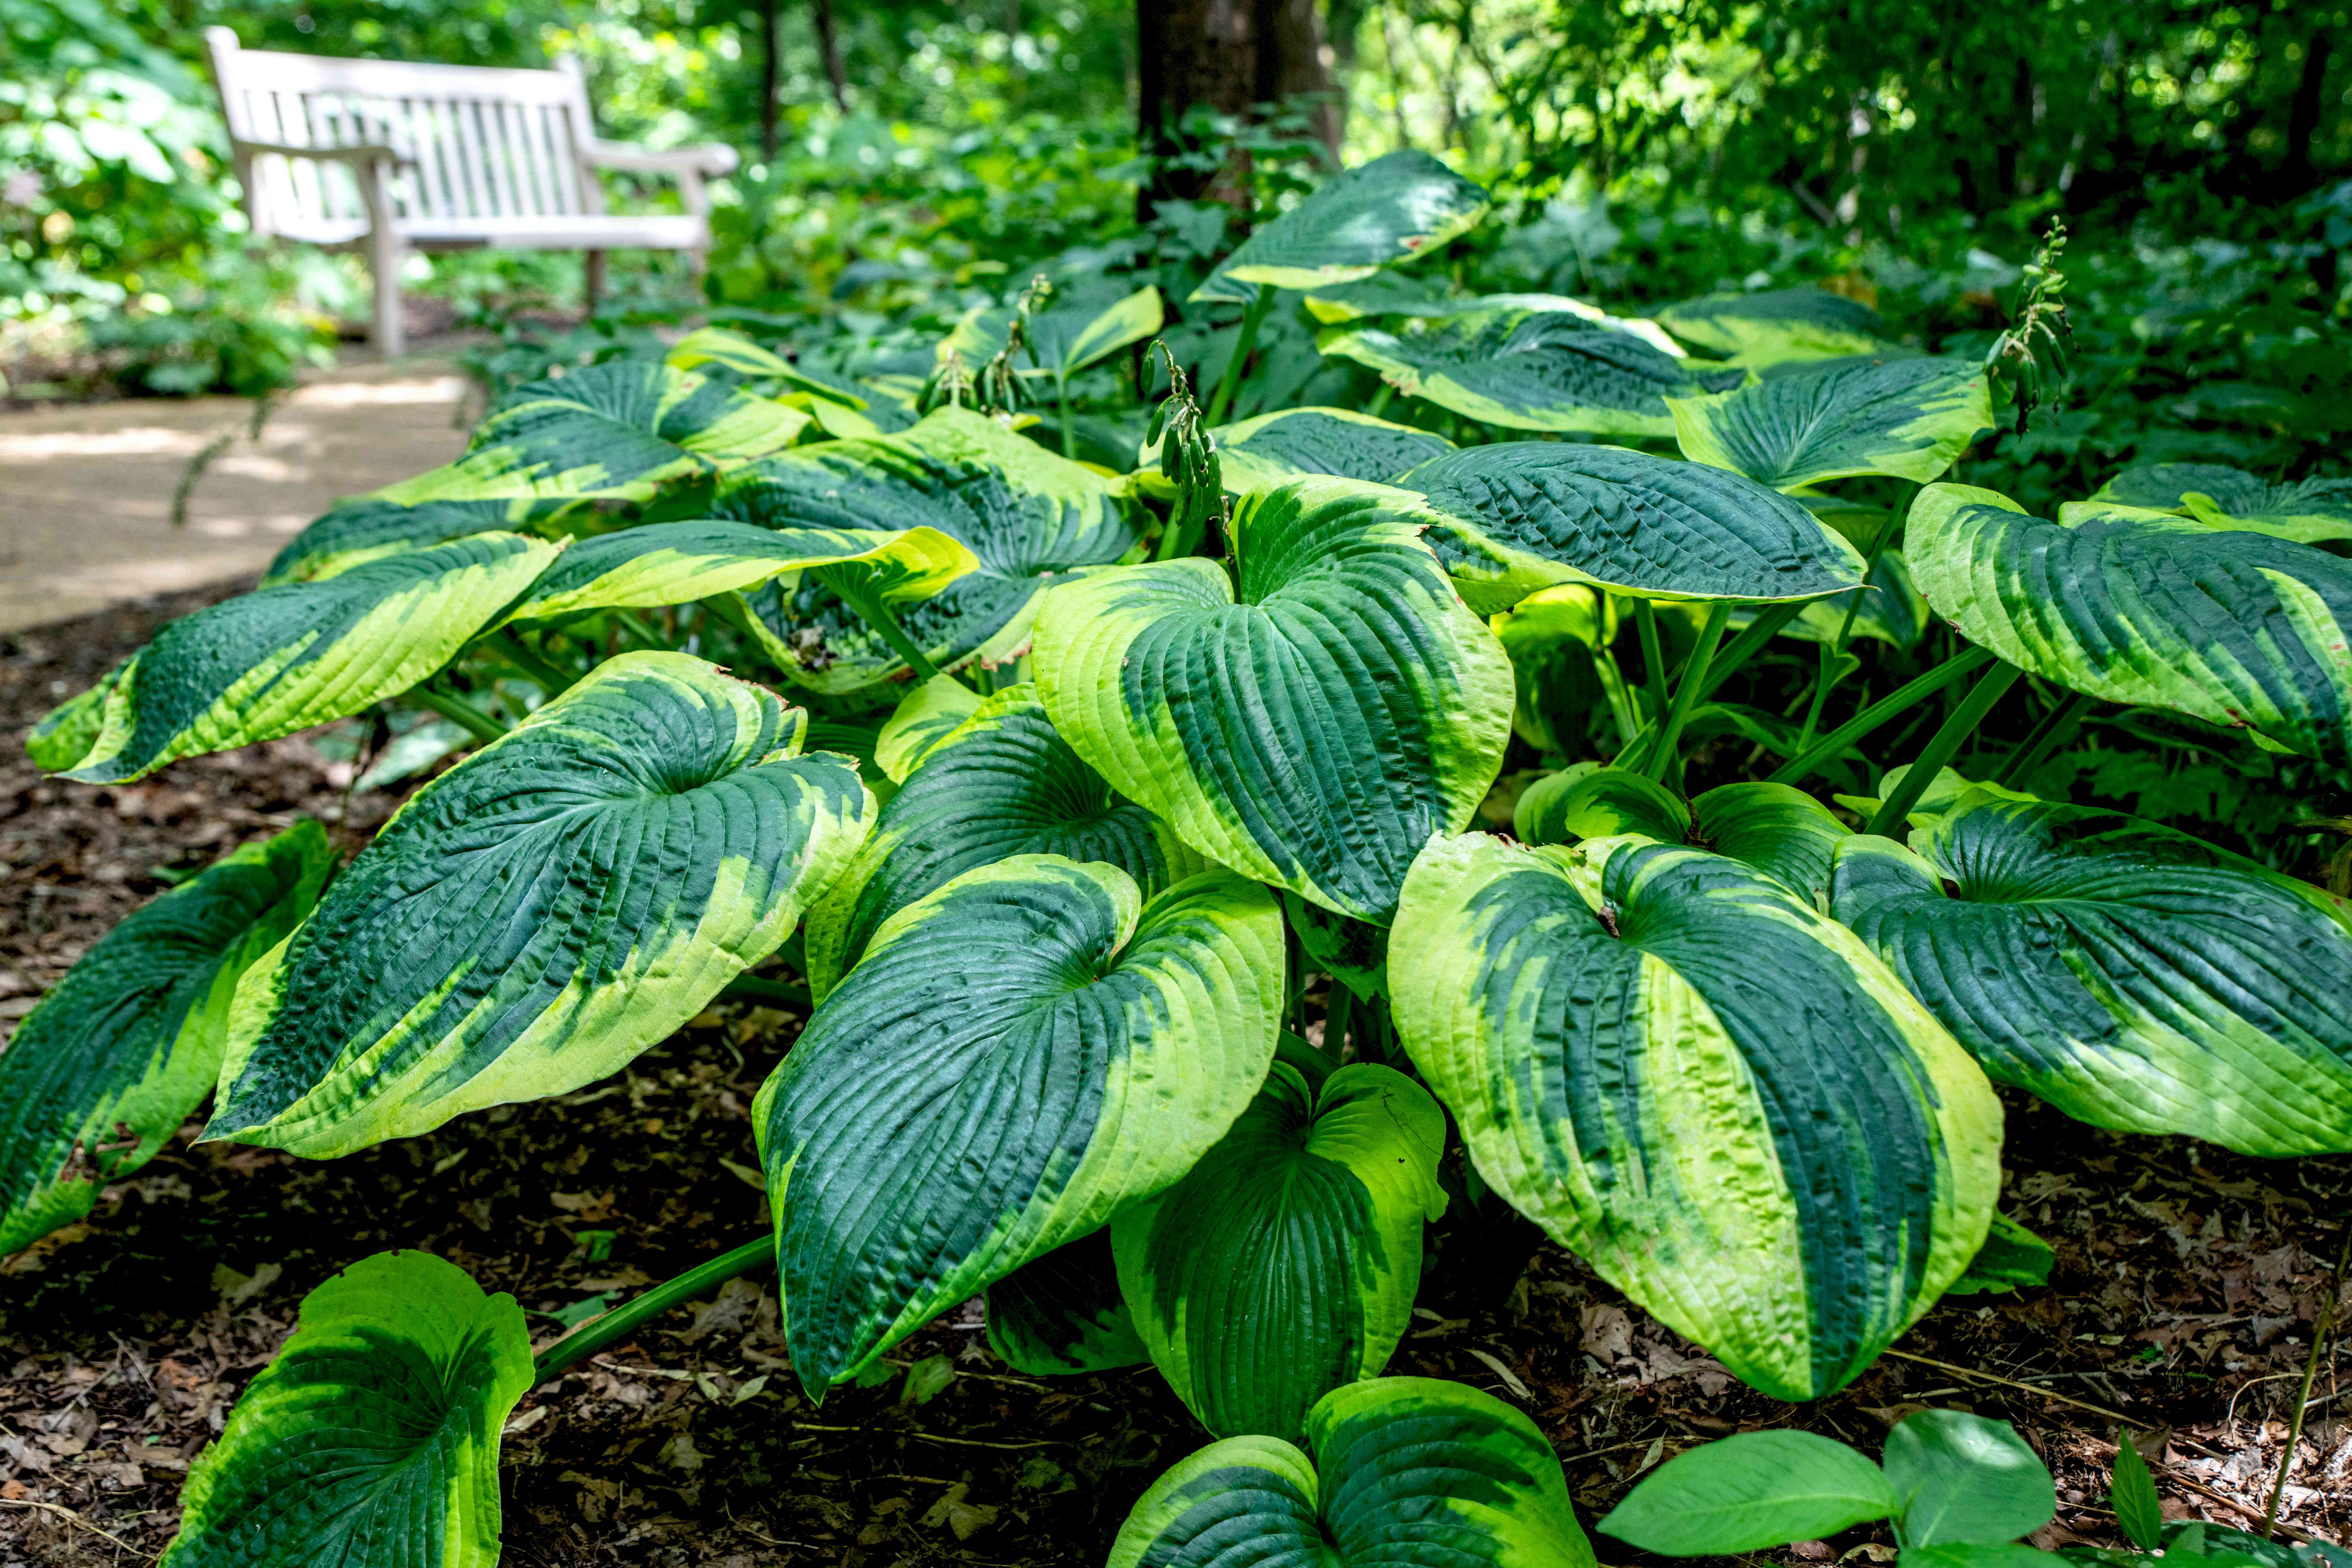 Frances Williams hosta plants clumped together near pathway with large variegated green leaves